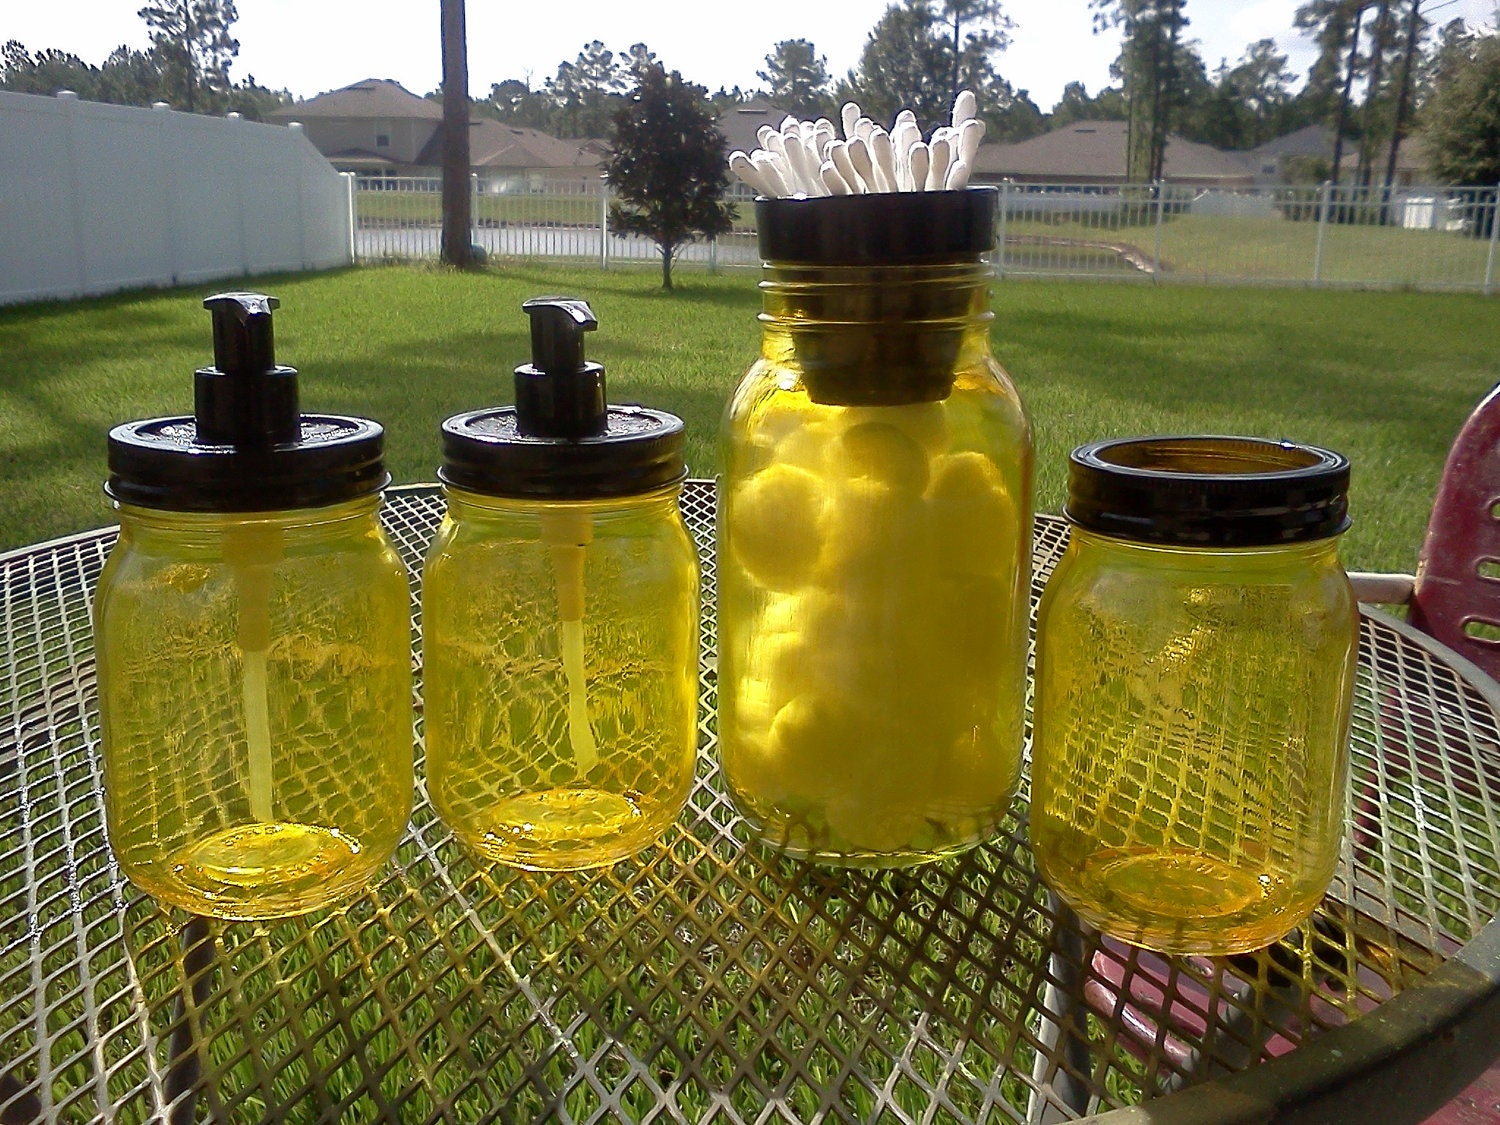 BATHROOM SET - Cotton - Q-Tip - Soap Dispensers - Toothbrush - Mason Jars -  Yellow and black